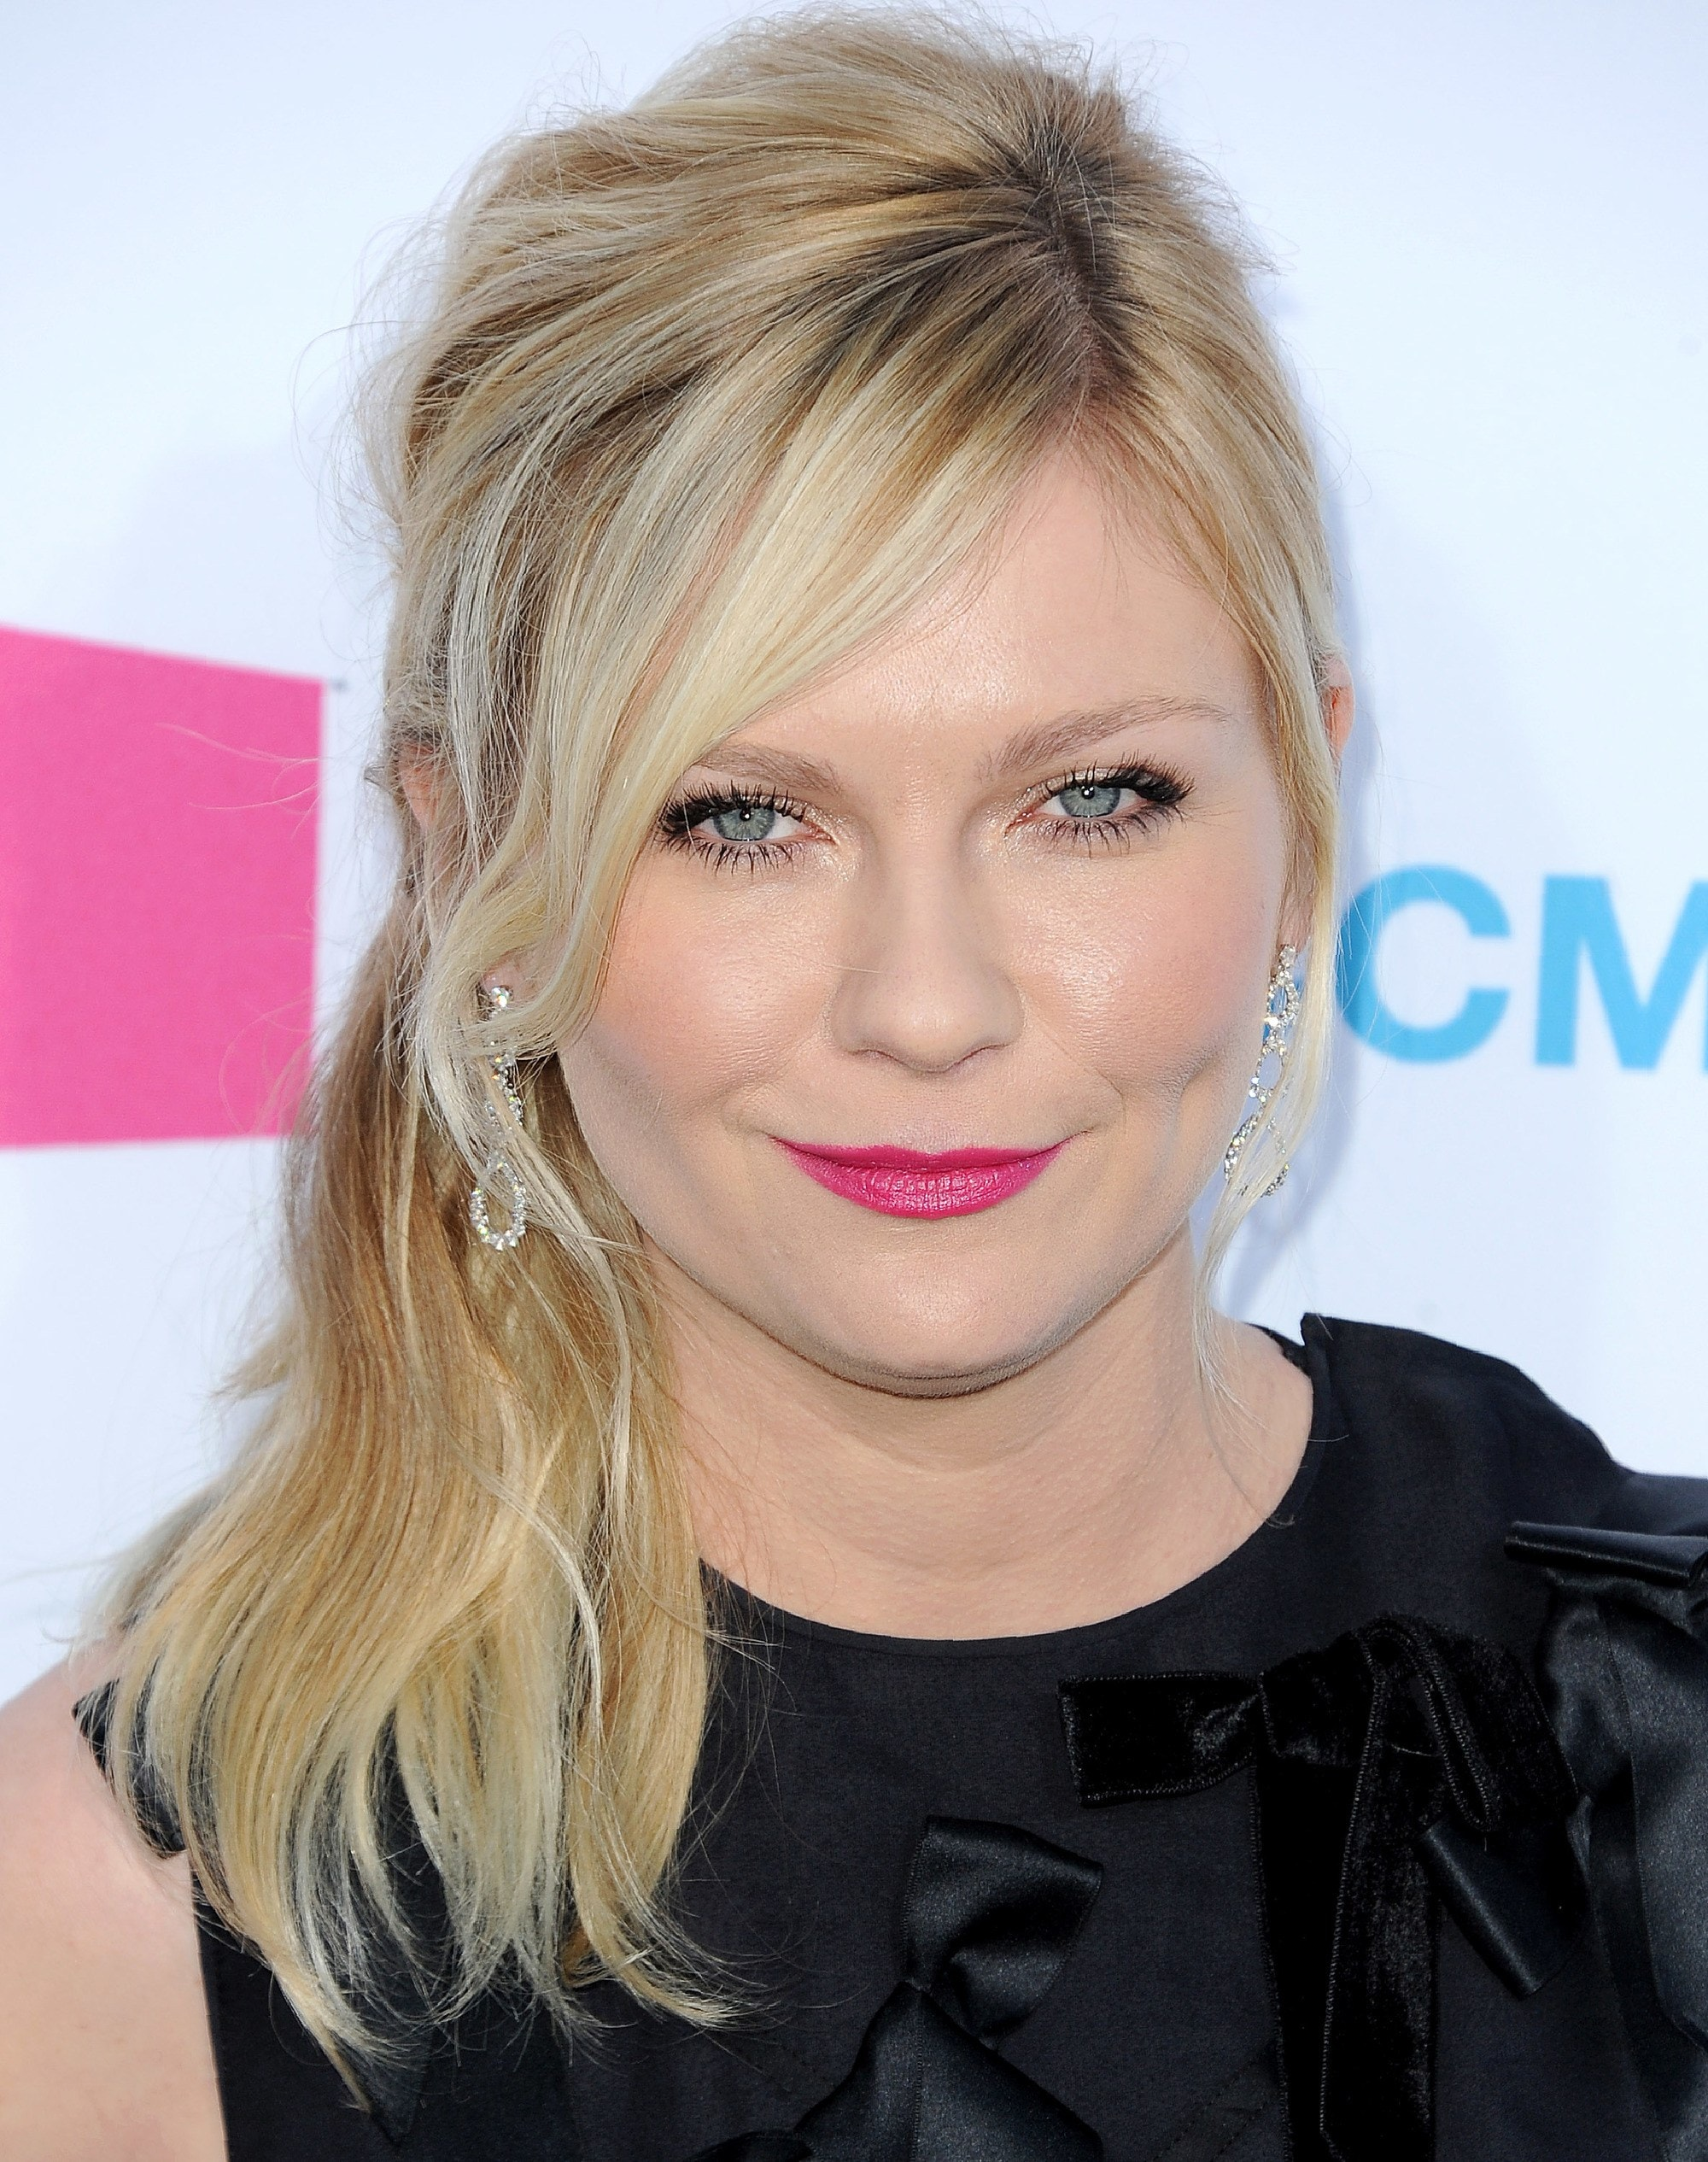 Kirsten Dunst With A Messy Side Ponytail And Bangs